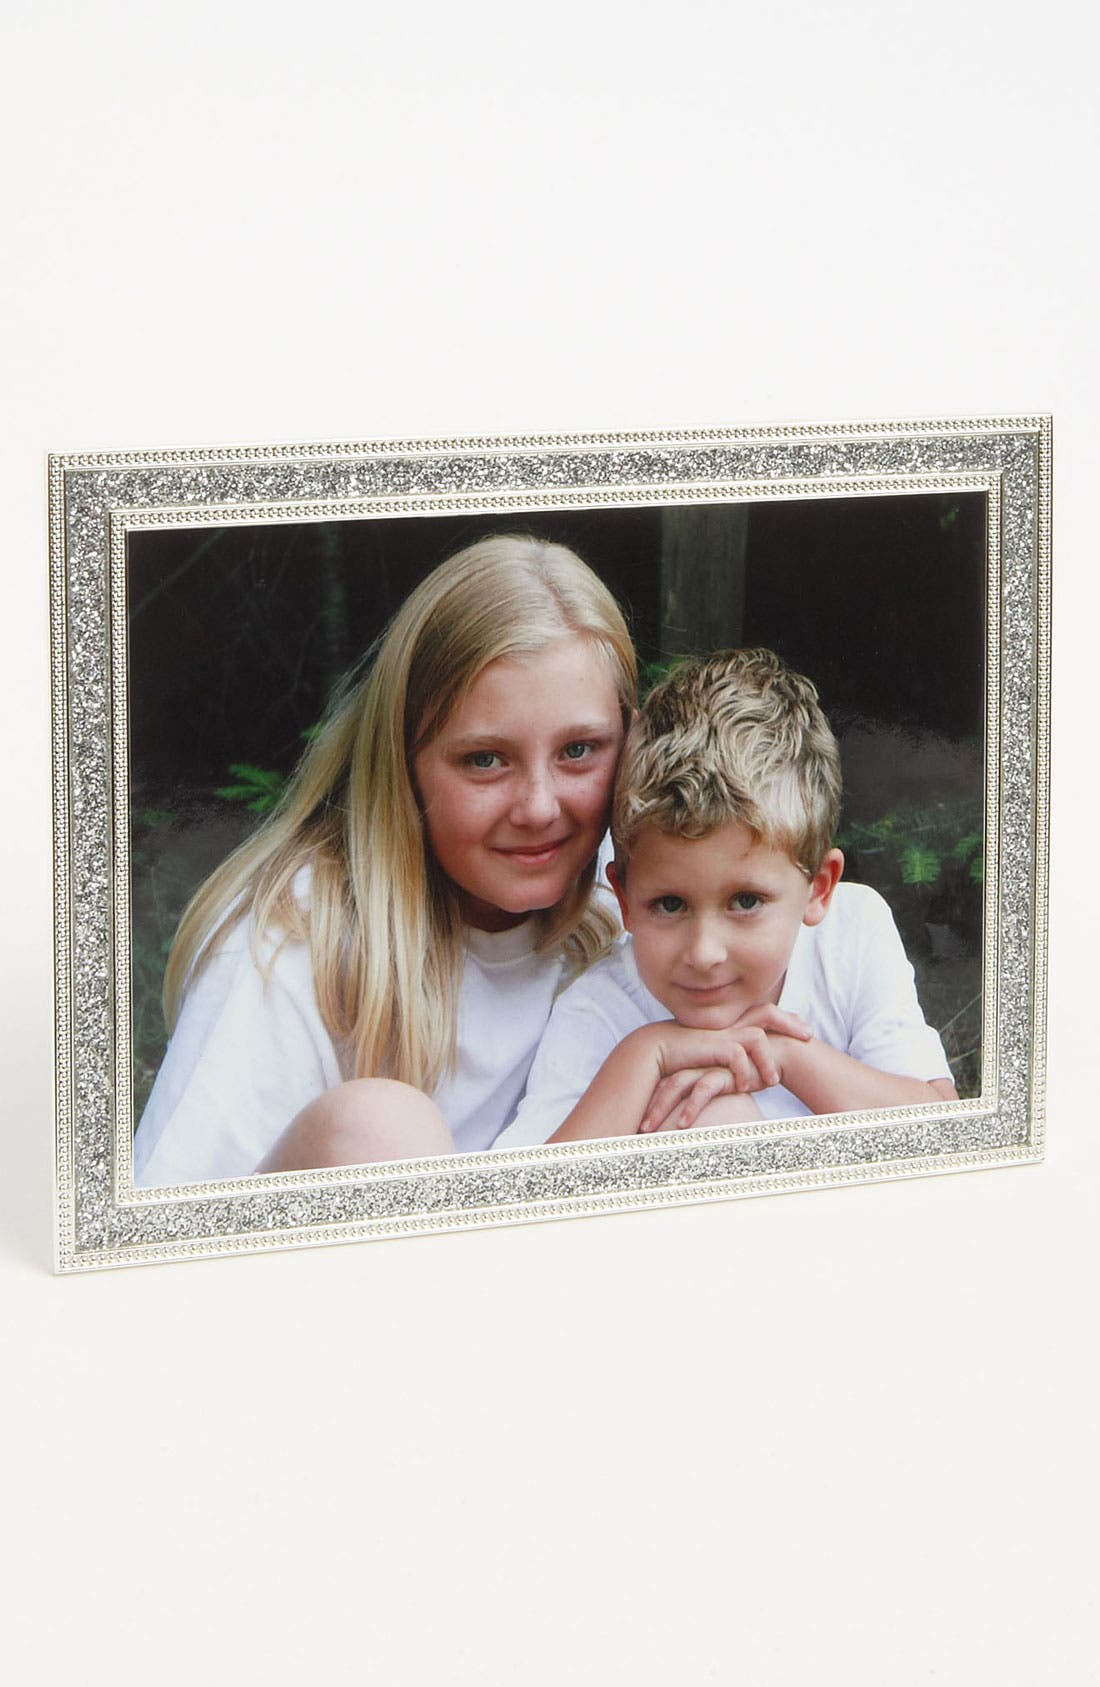 Alternate Image 1 Selected - Glitter & Rhinestone Picture Frame (5x7)